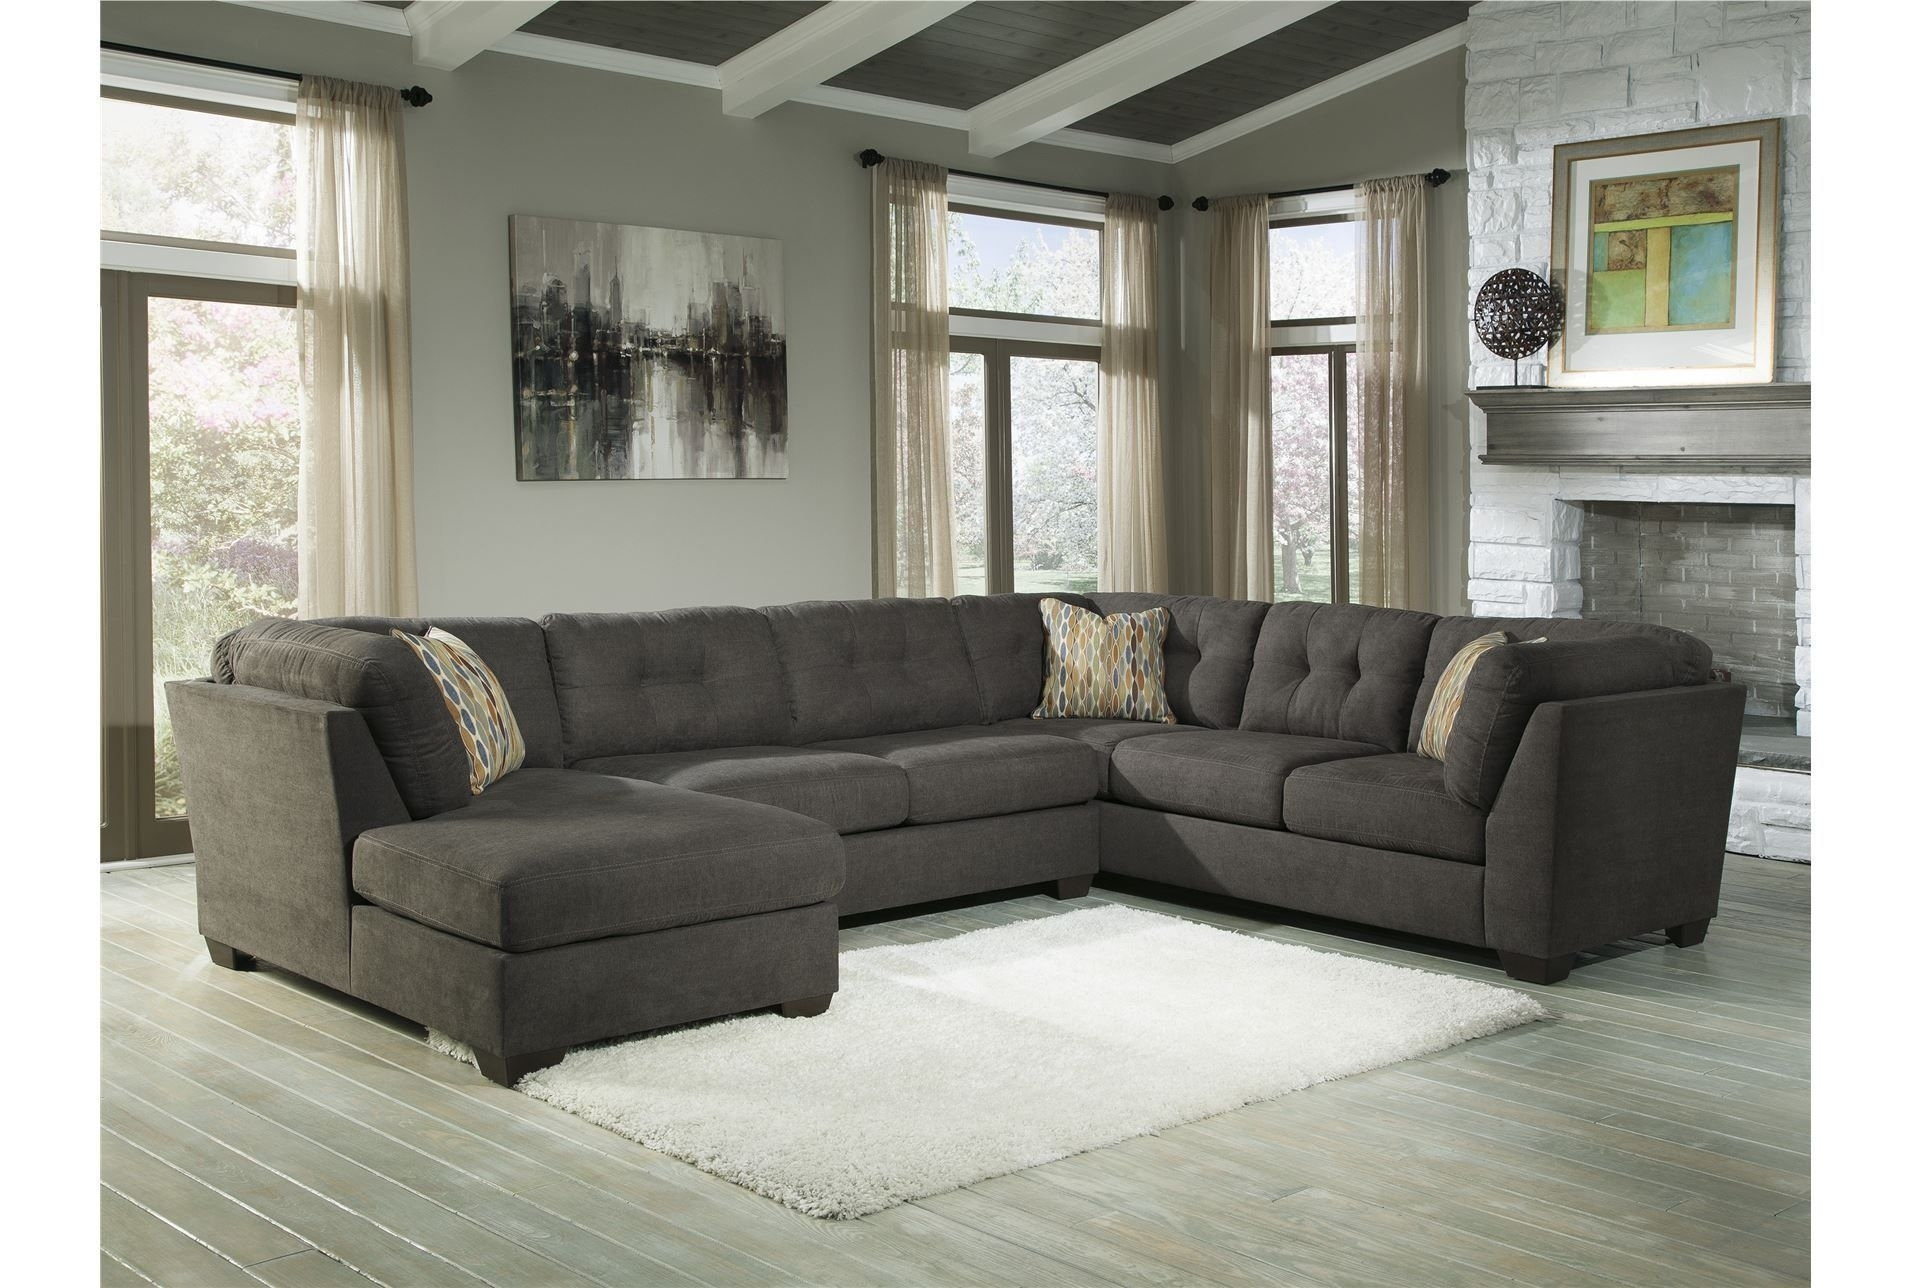 Delta City Steel 3 Piece Sectional W/laf Chaise- Living Room Option pertaining to Haven Blue Steel 3 Piece Sectionals (Image 10 of 30)